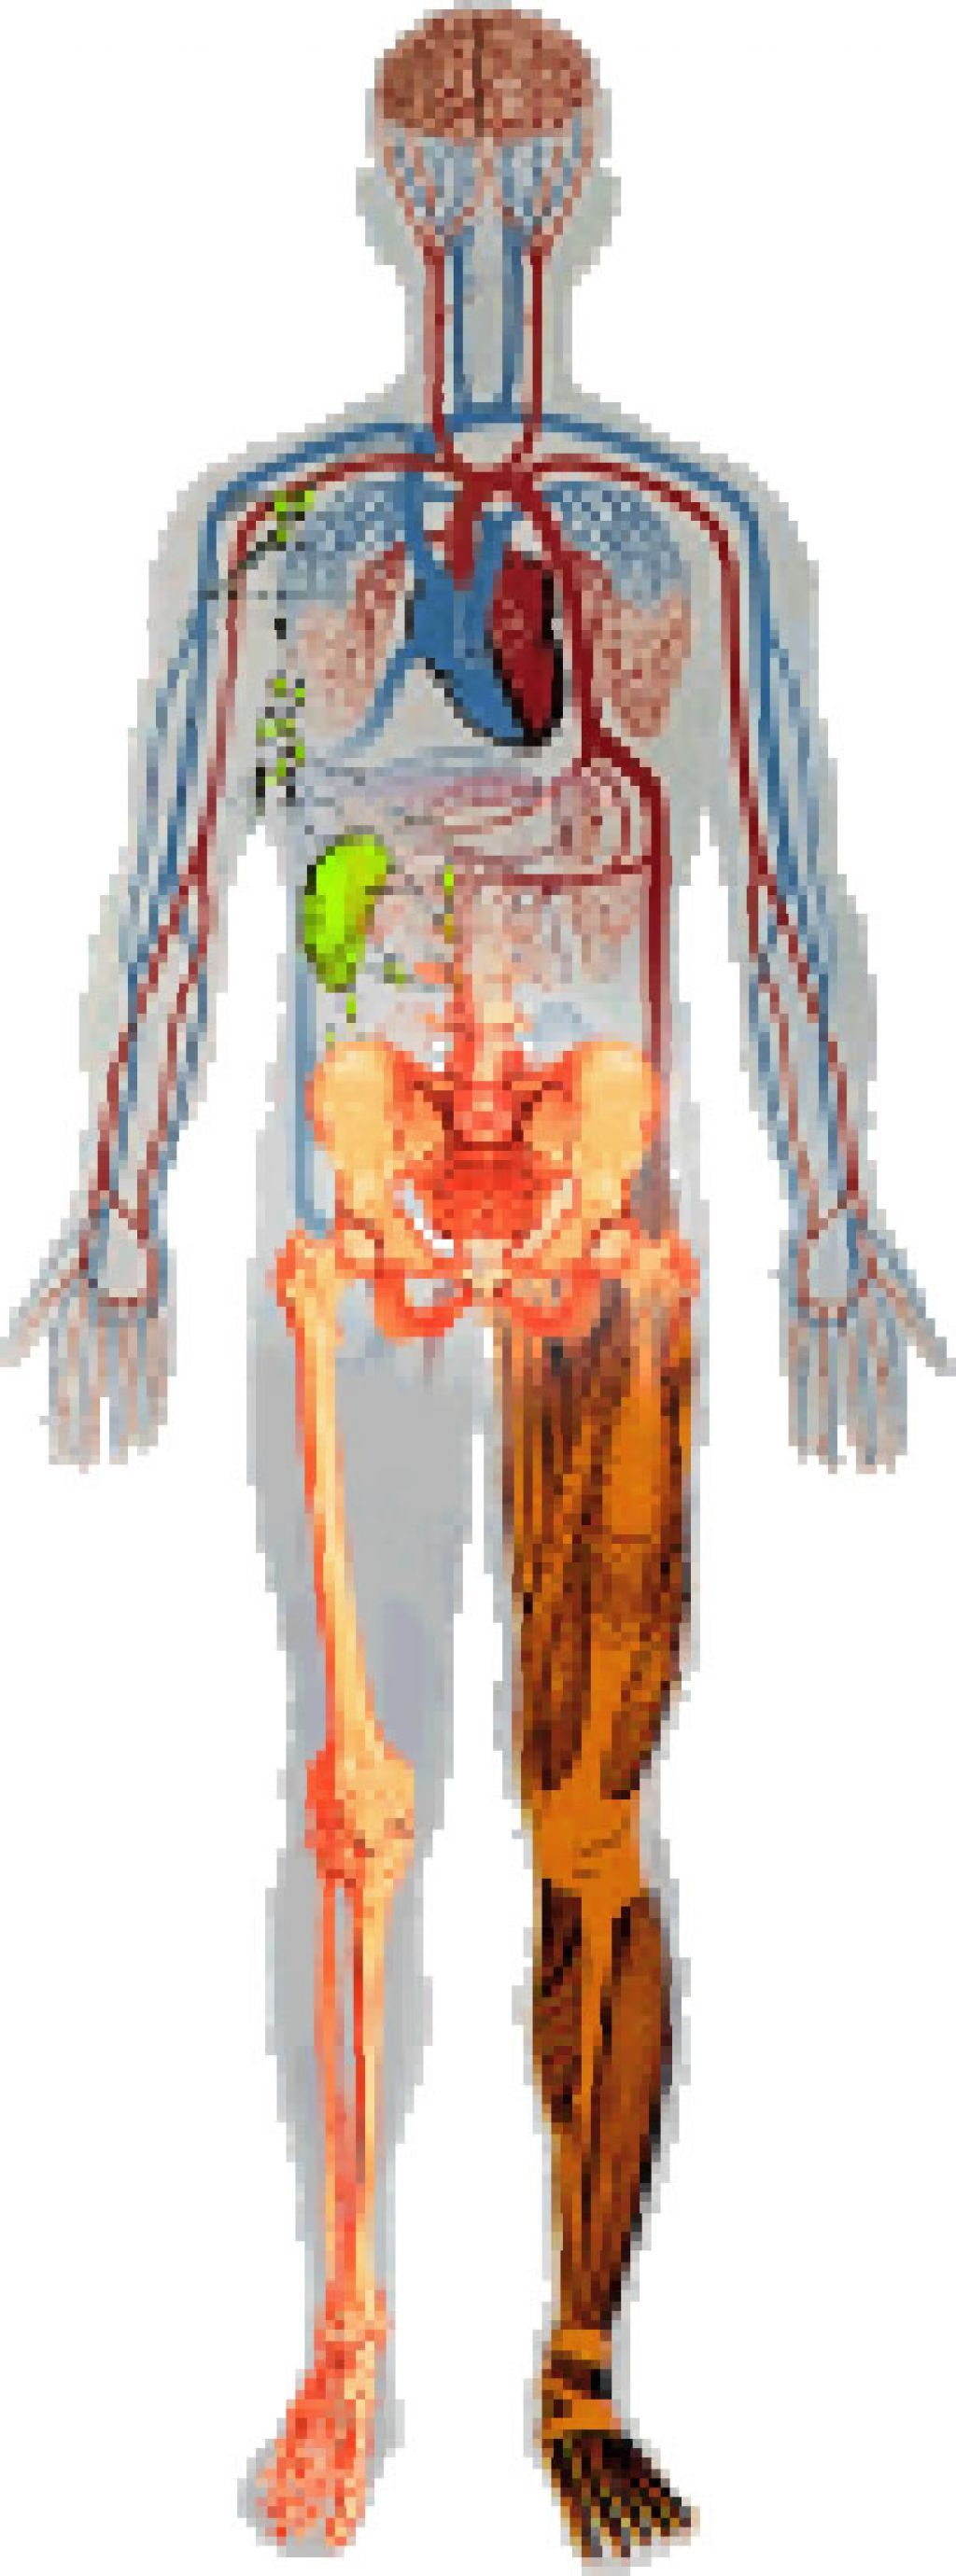 Human Body Systems Diagrams | Human body systems, Human ...